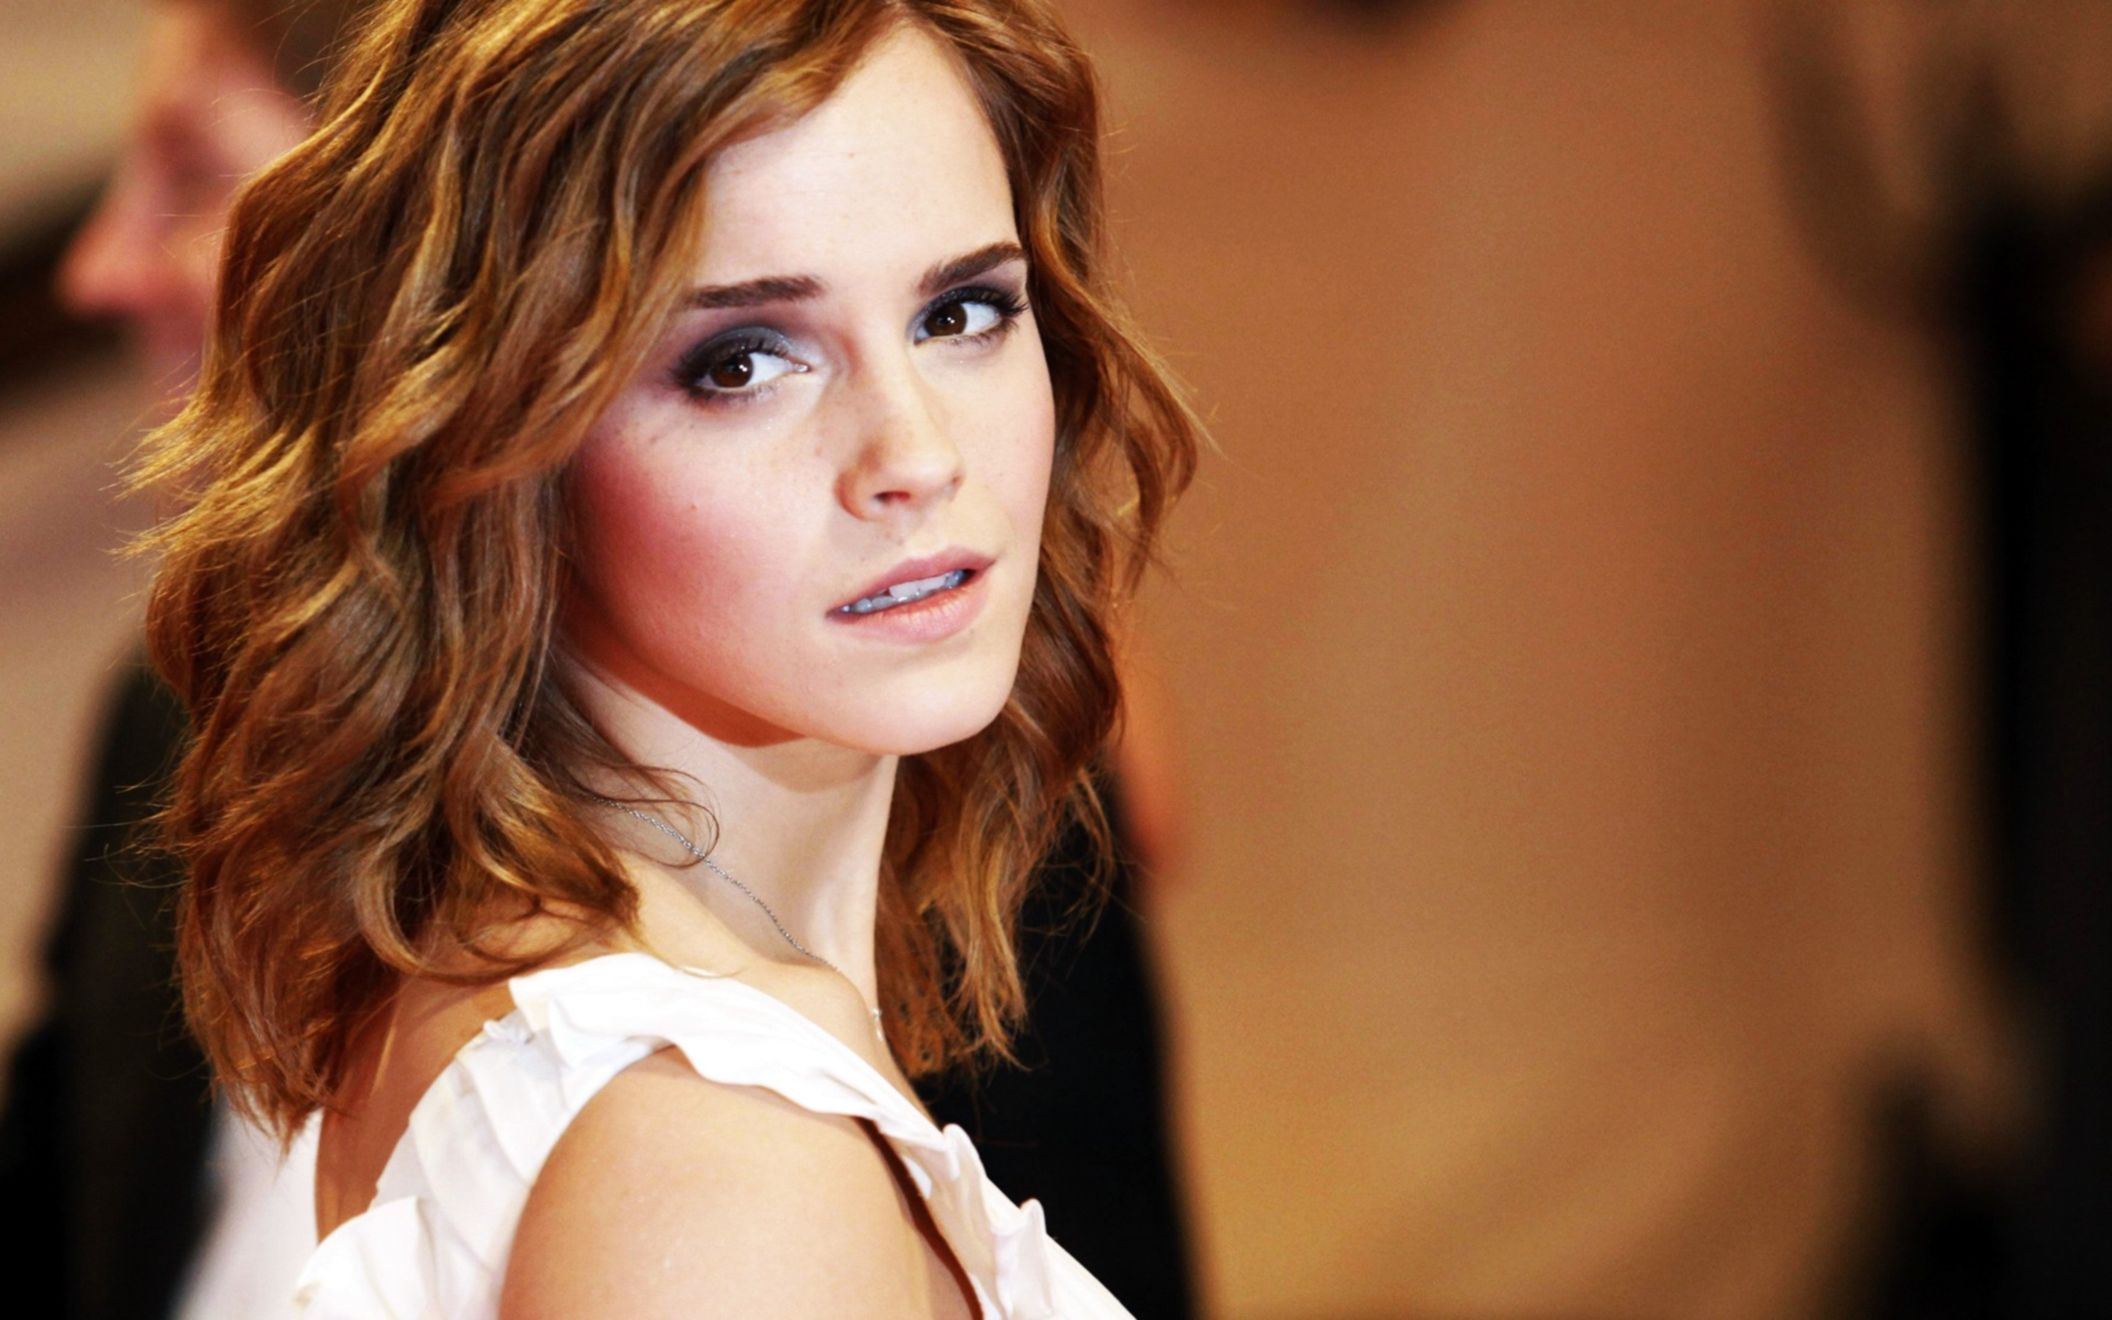 Download free HD Emma Watson at Metropolitan Muesum 2010 Wide Wallpaper, image